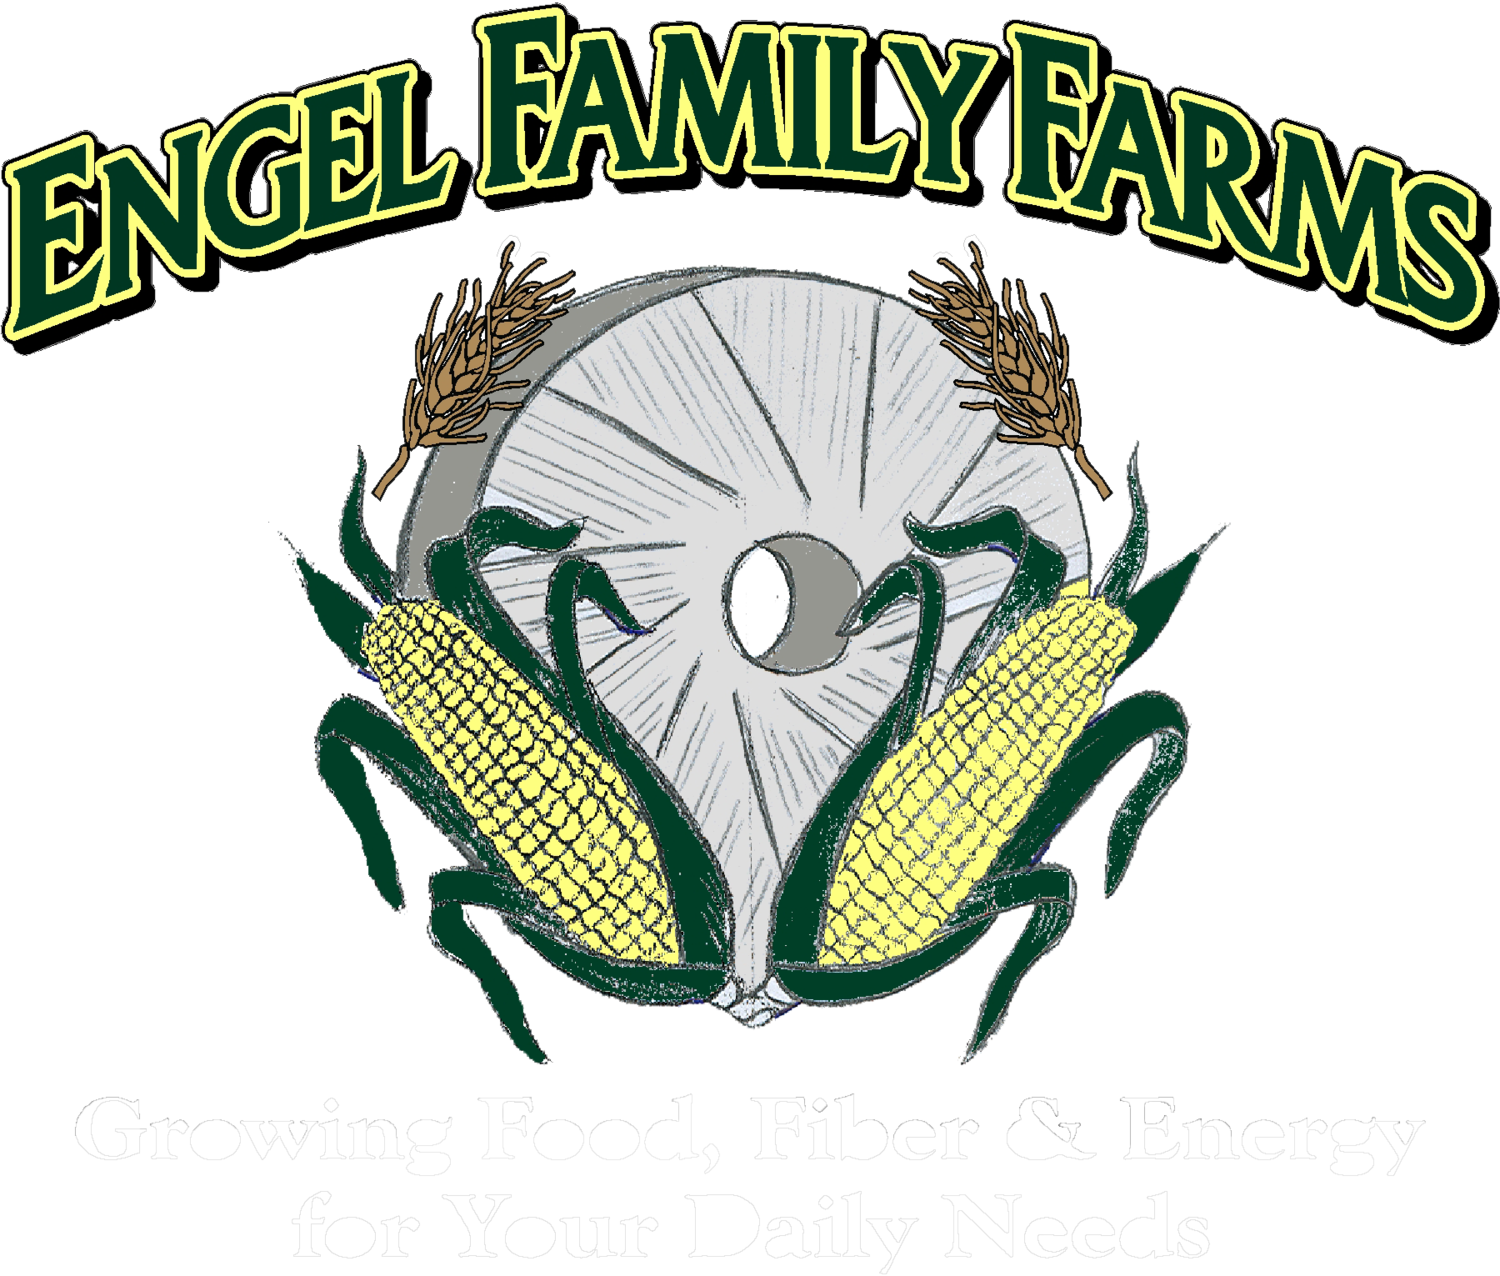 Engel Family Farms